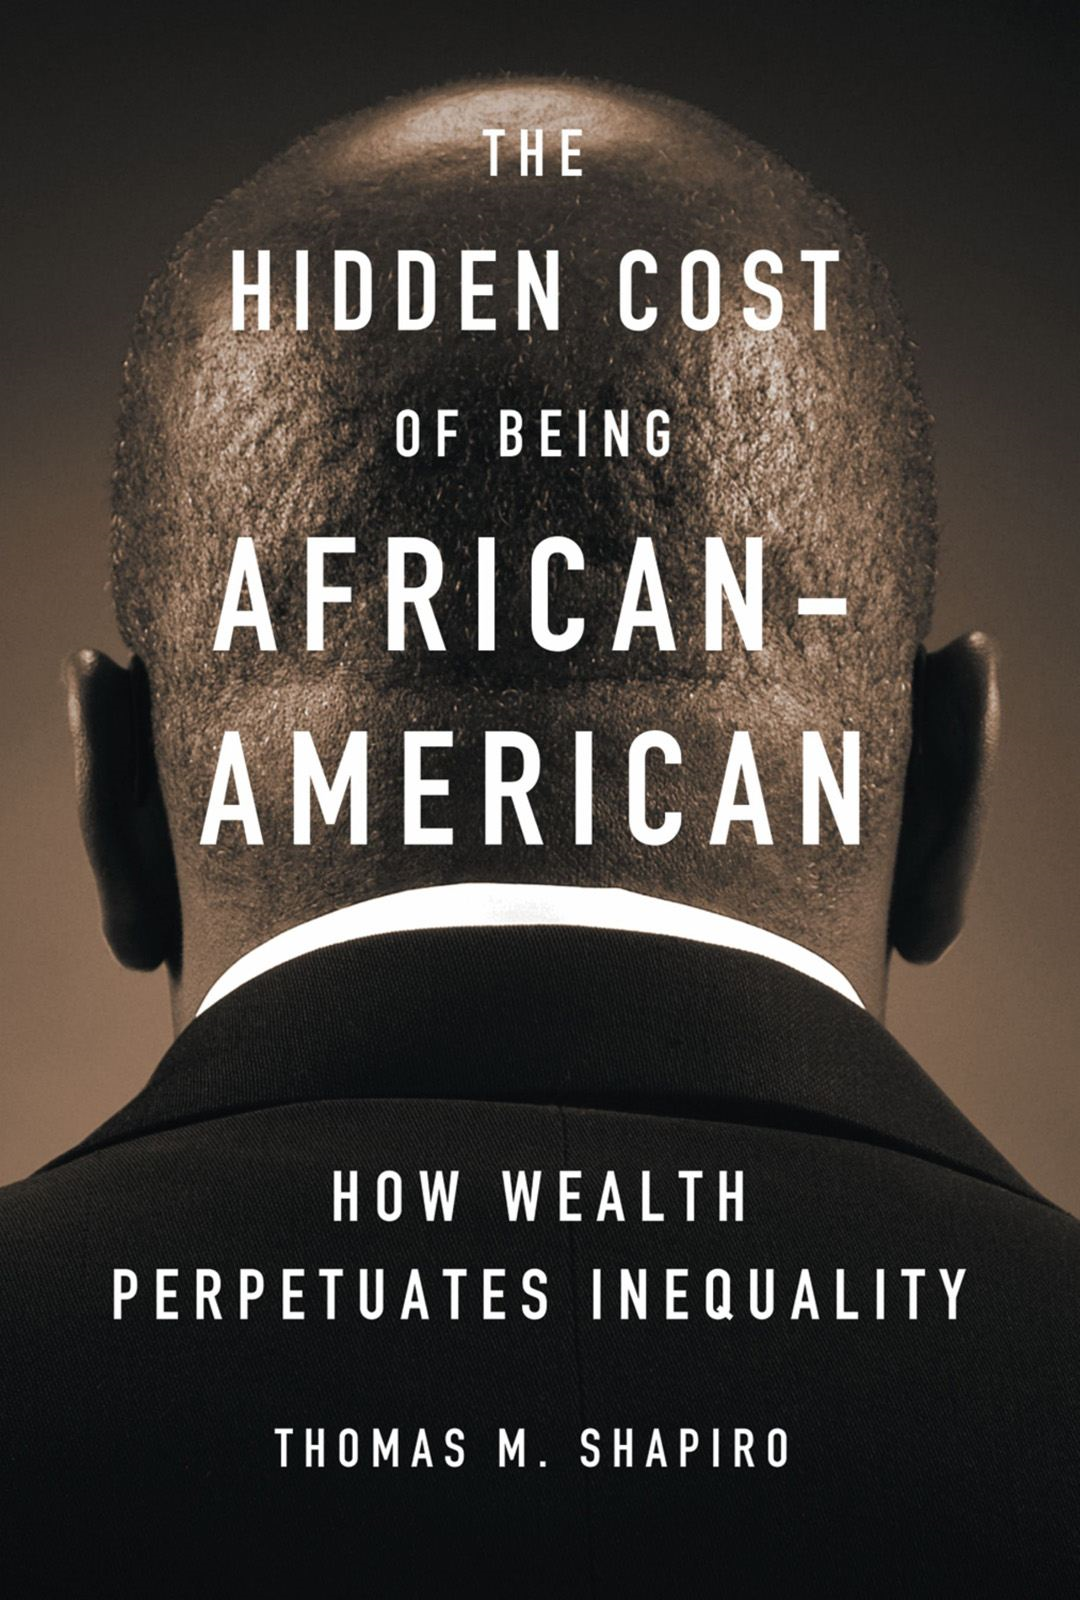 The Hidden Cost of Being African American:How Wealth Perpetuates Inequality